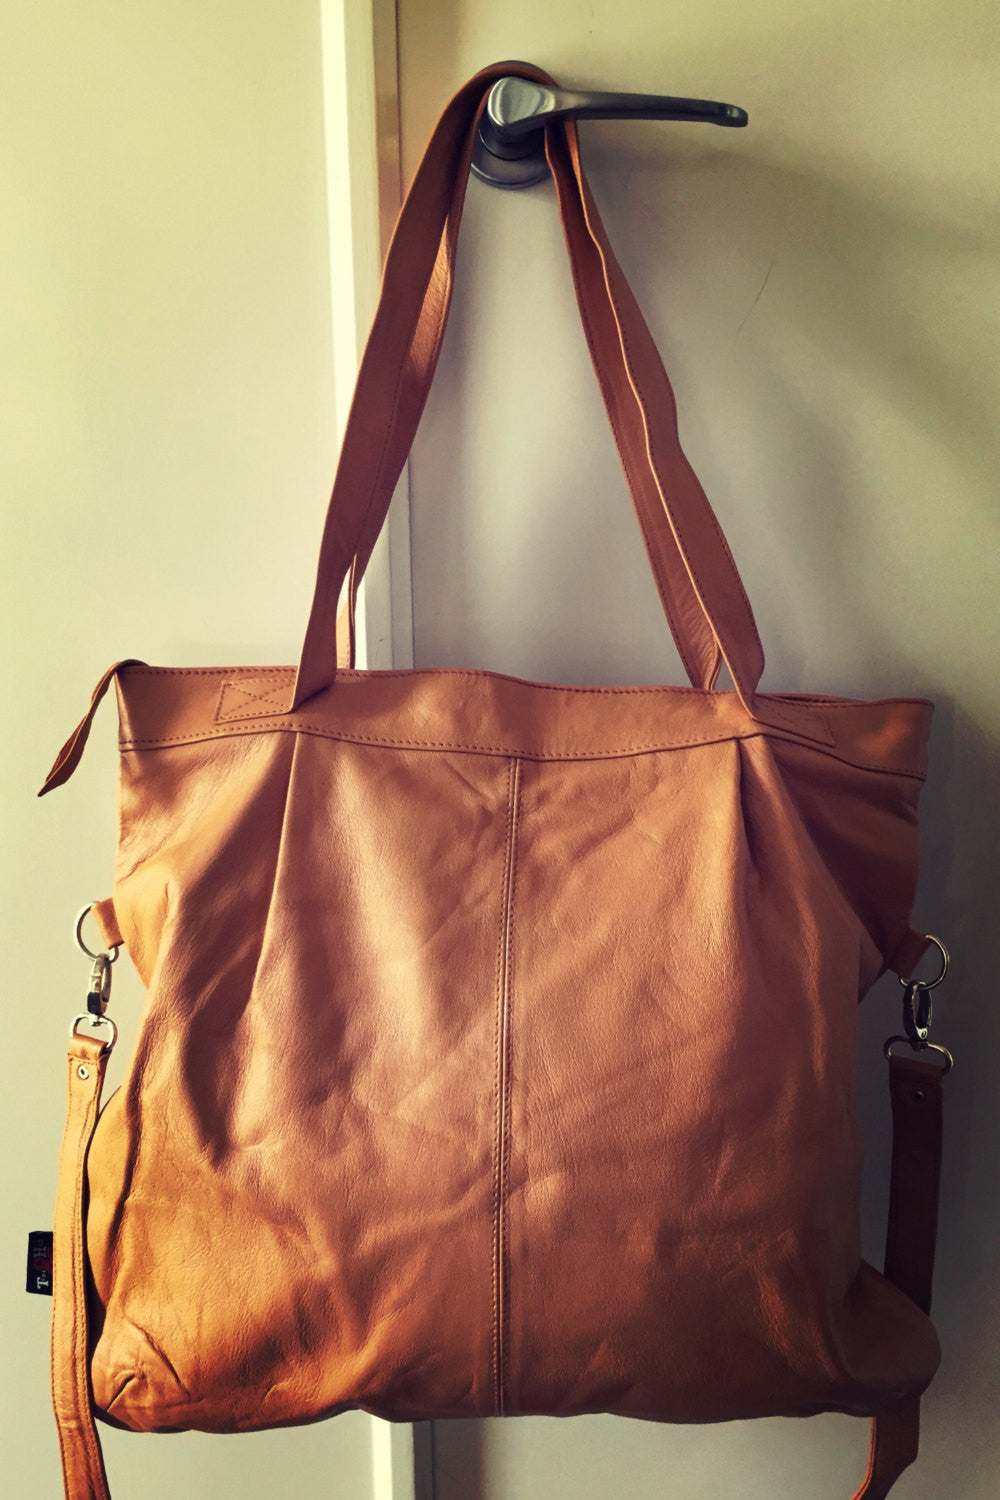 The Flick-Handmade shoulder tote handbag purse. Shoulder straps and crossbody strap.